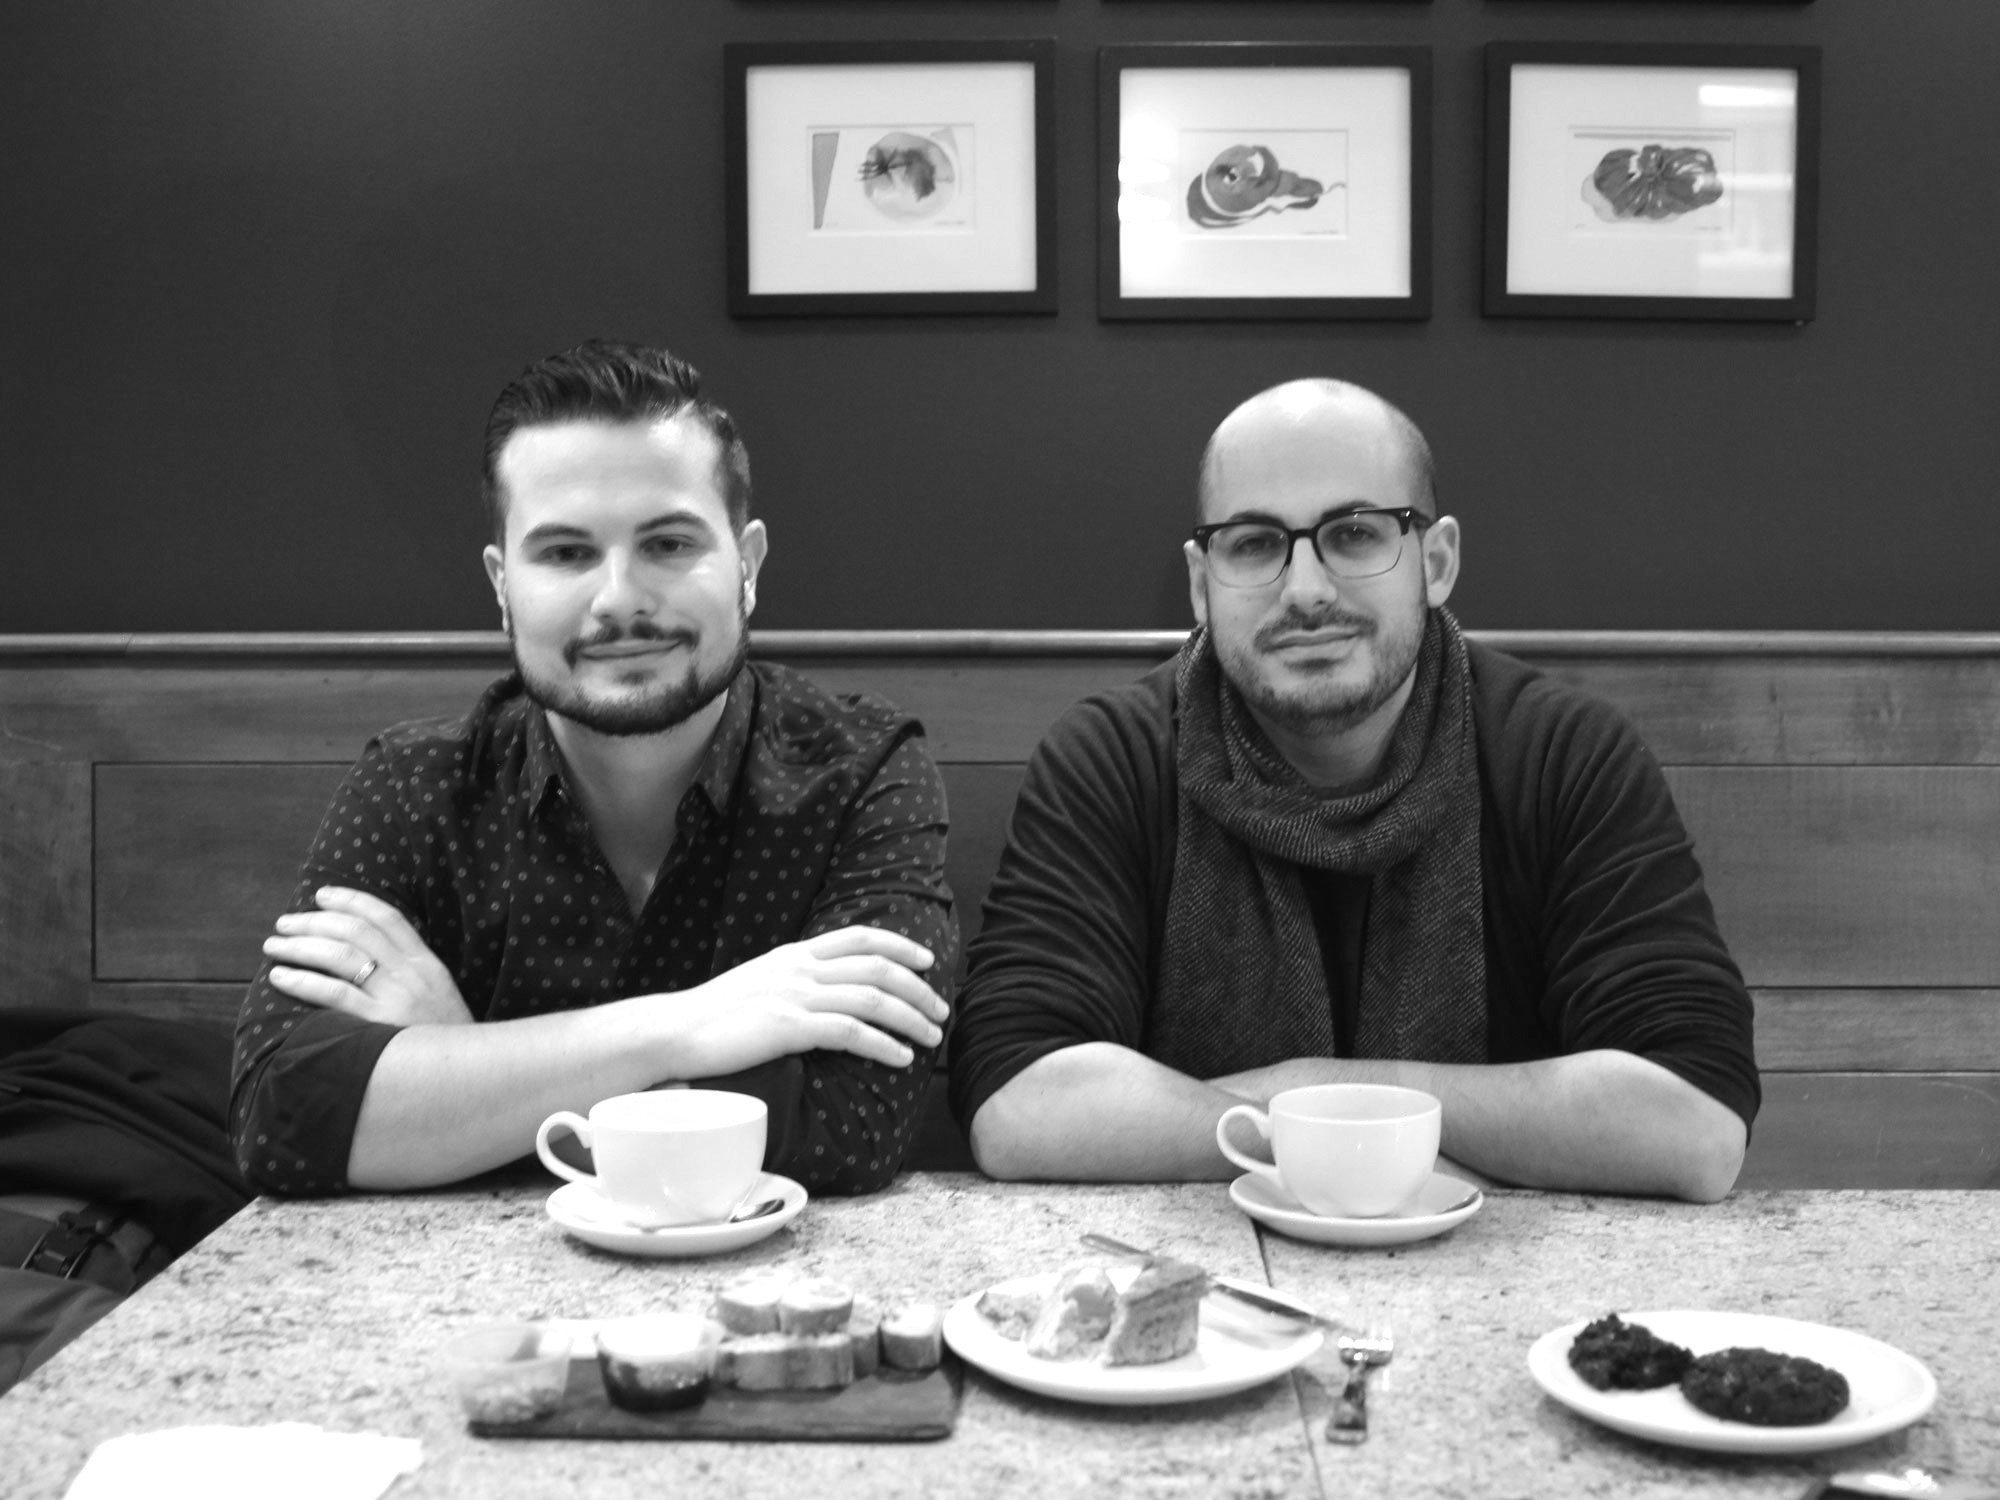 COFFEE WITH ZACH ENGEL AND ANDRÉS CLAVERO OF GALIT